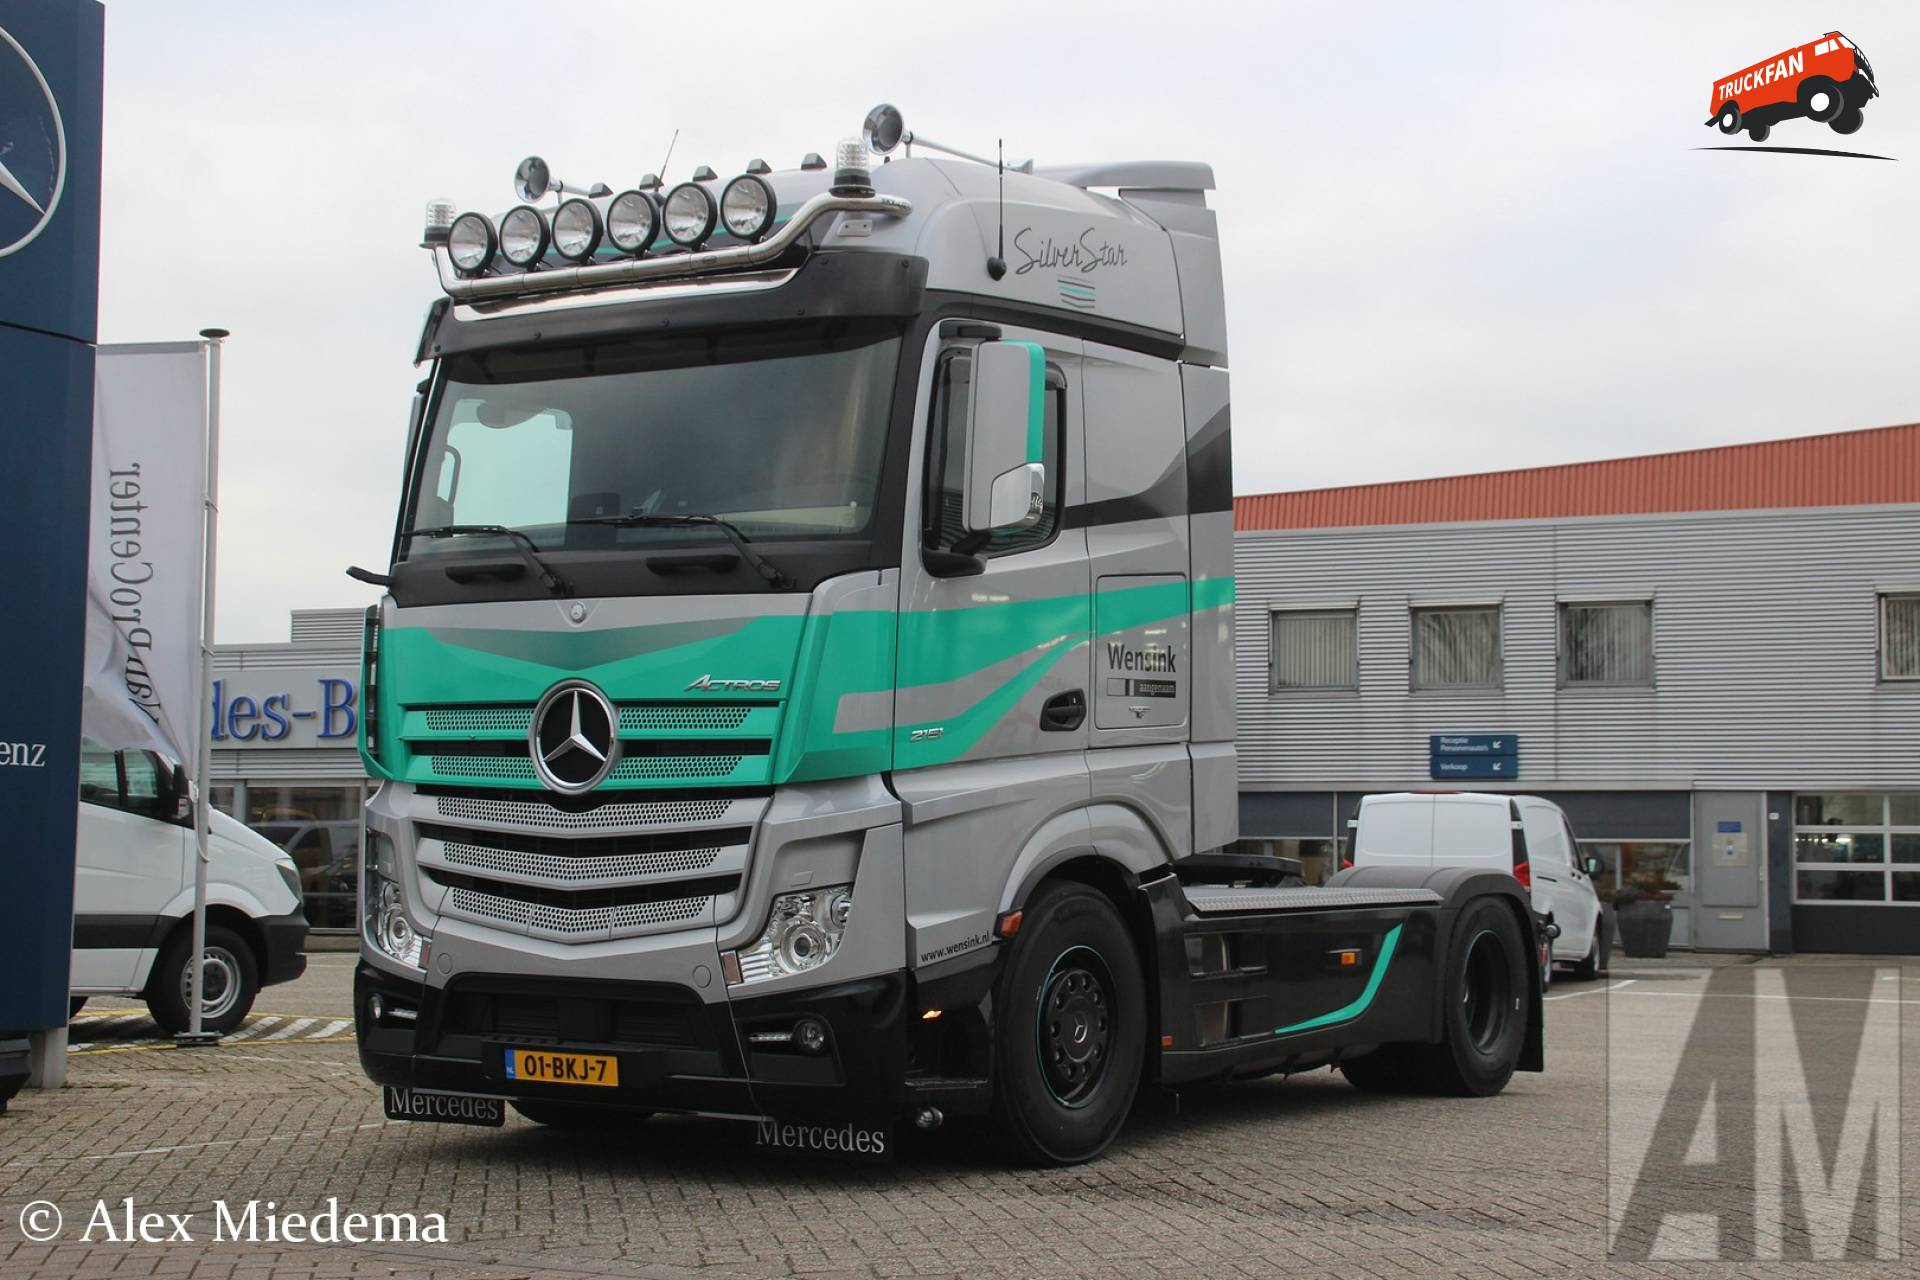 foto mercedes benz actros mp4 van wensink. Black Bedroom Furniture Sets. Home Design Ideas